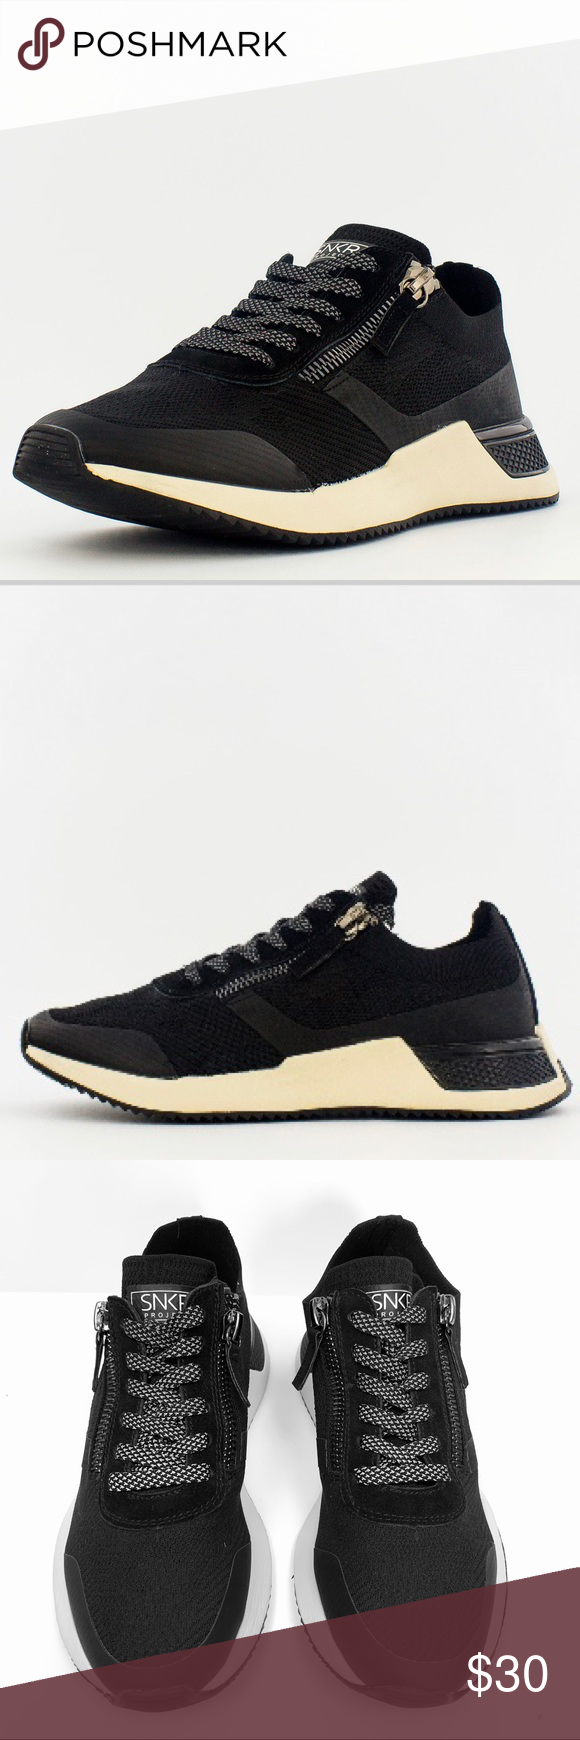 SNKR PROJECT Rodeo 2.0 Sneaker Shoes